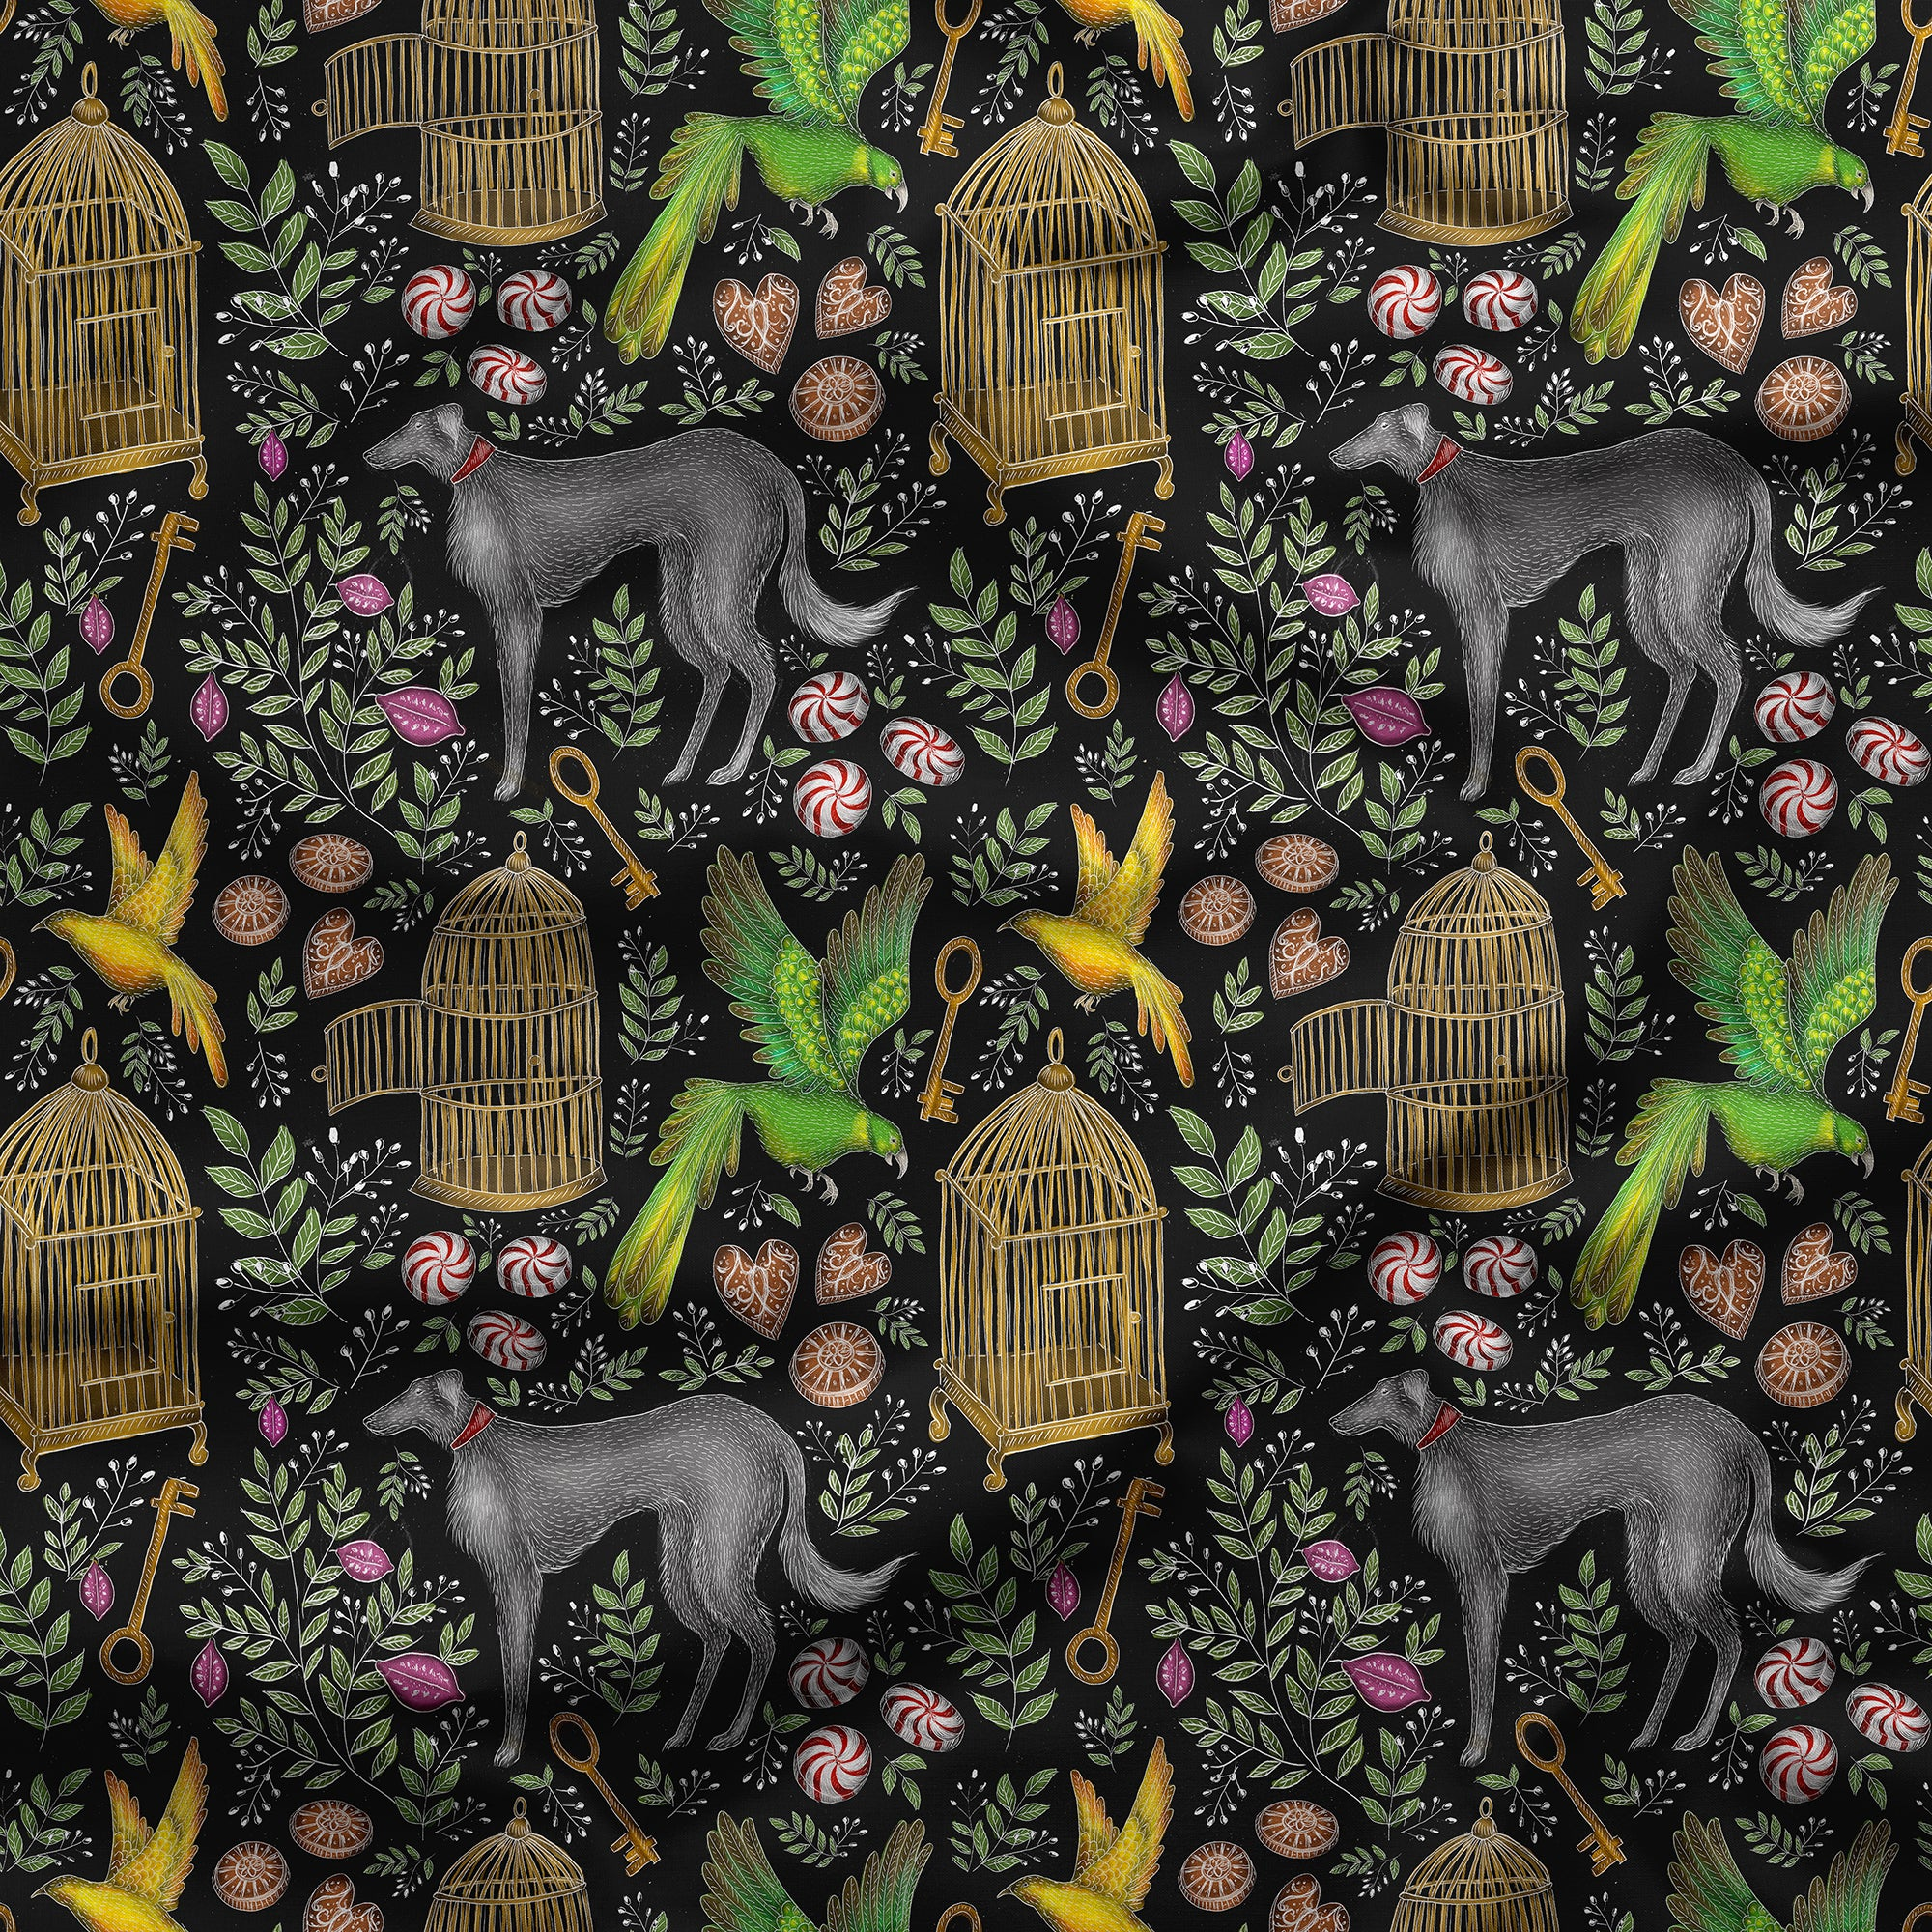 Amsterdam Pattern in Midnight Black Fabric